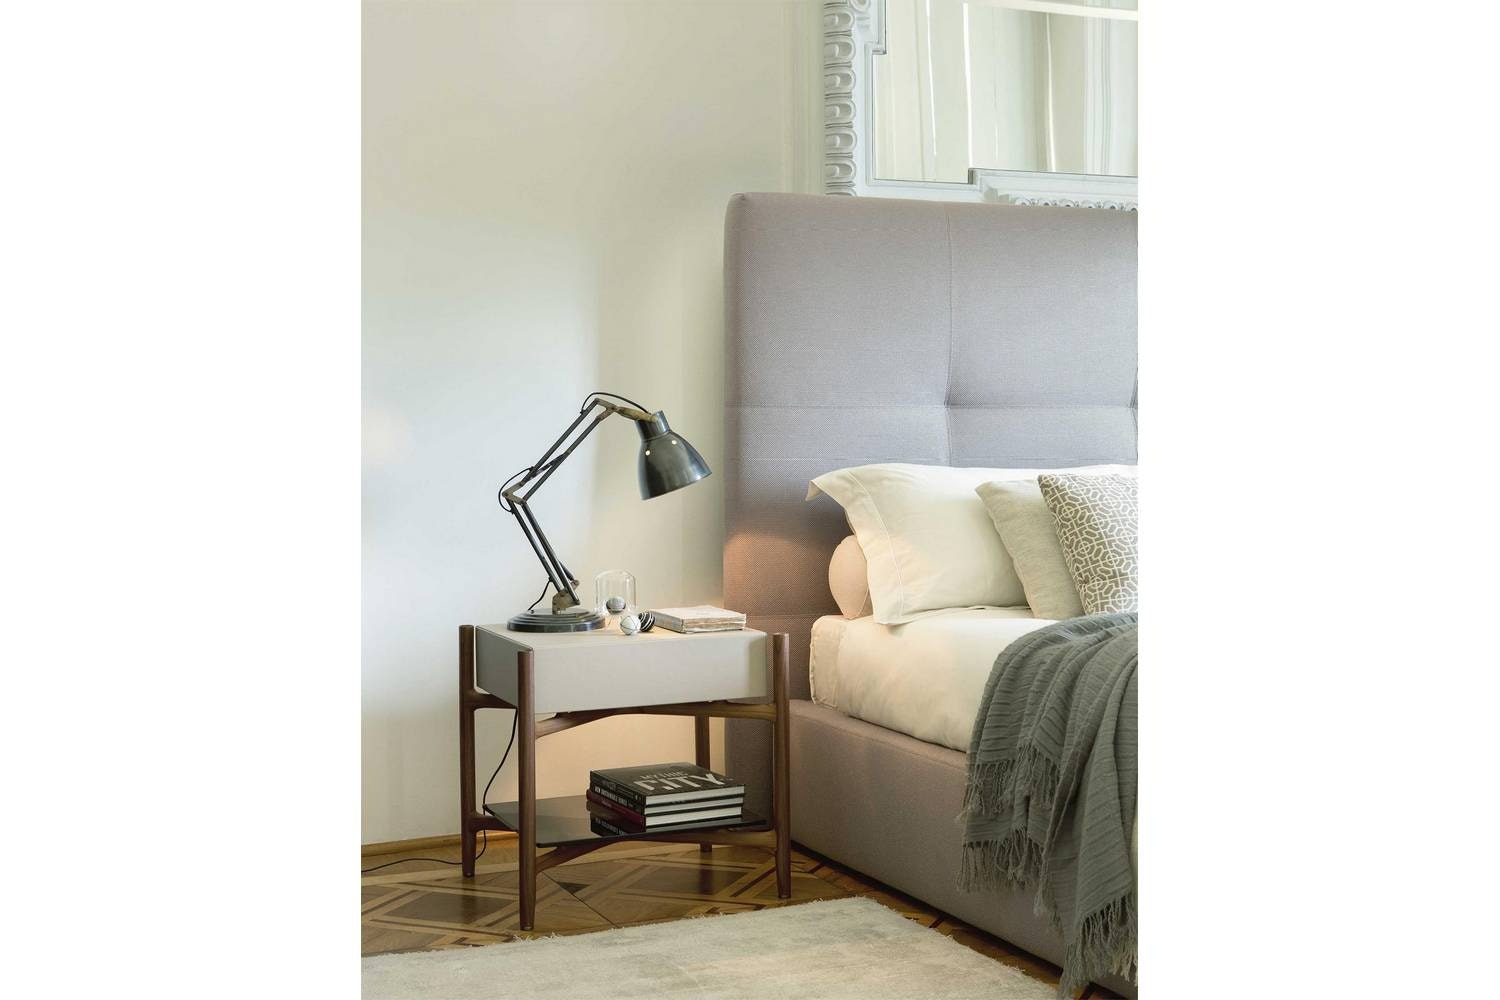 Regent Bedside Table by T. Colzani for Porada